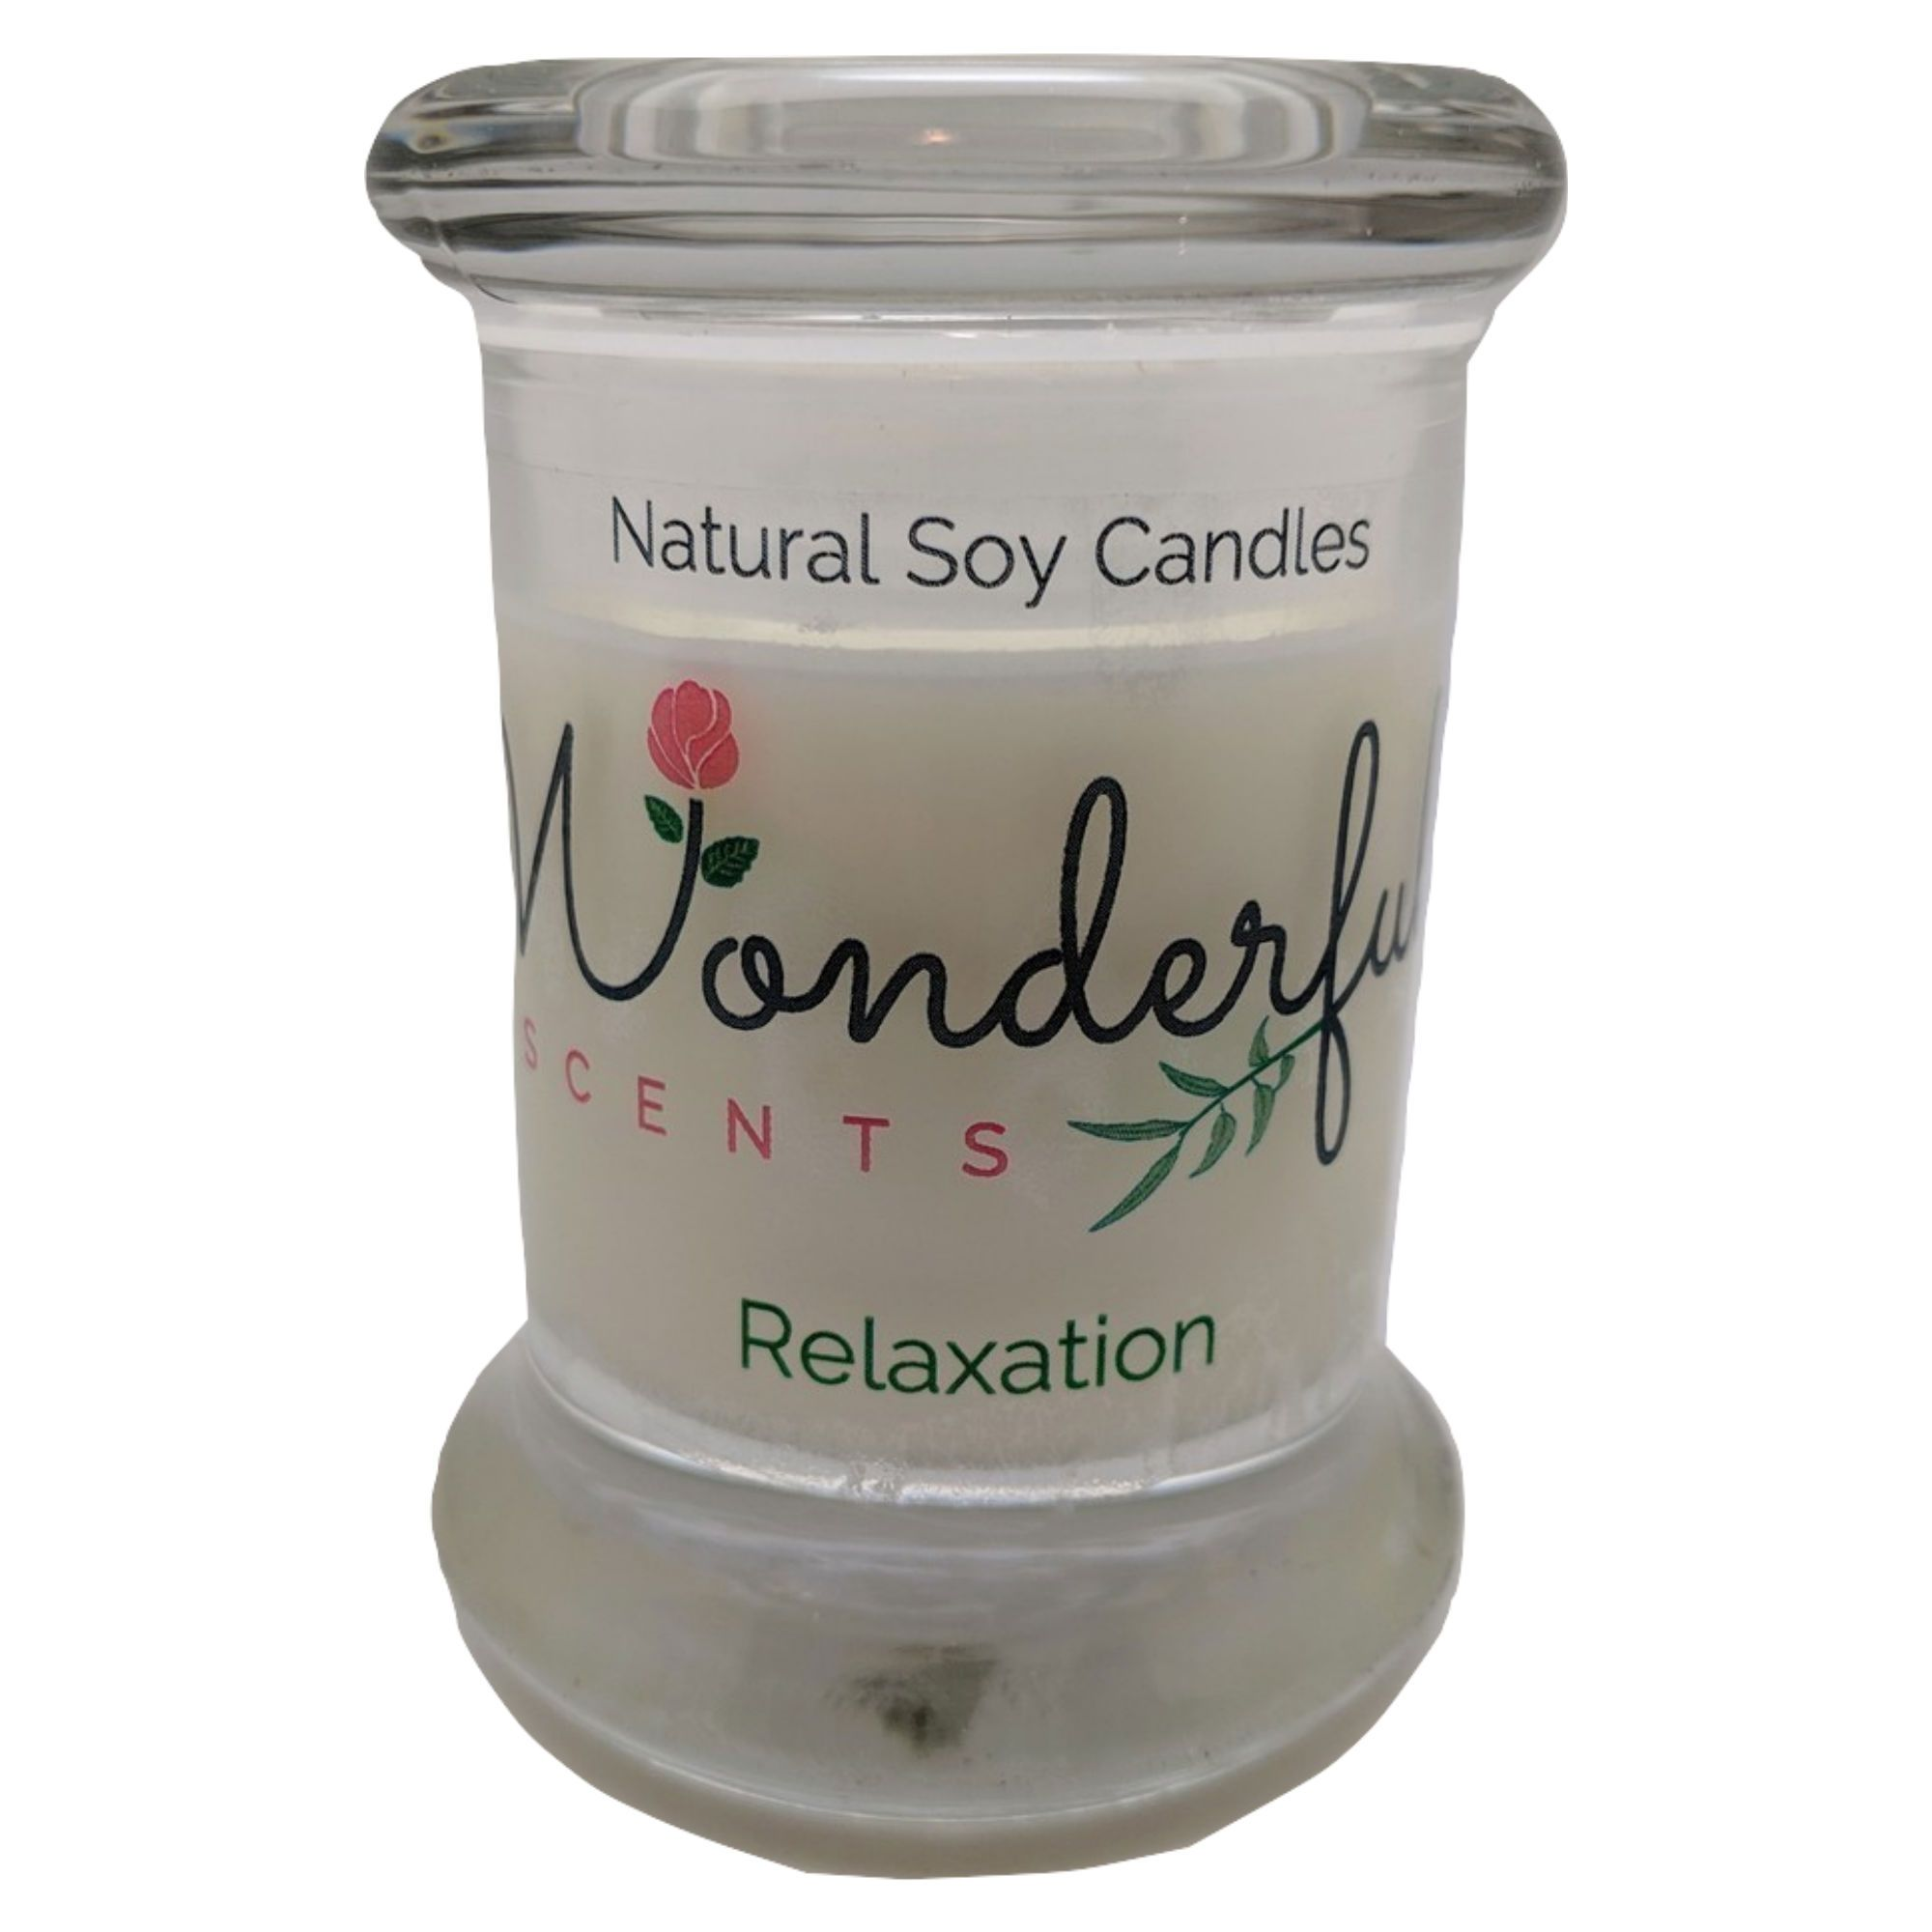 Wonderful Scents 2.75oz Relaxation Status Jar Candle Cotton Wick Glass Lid